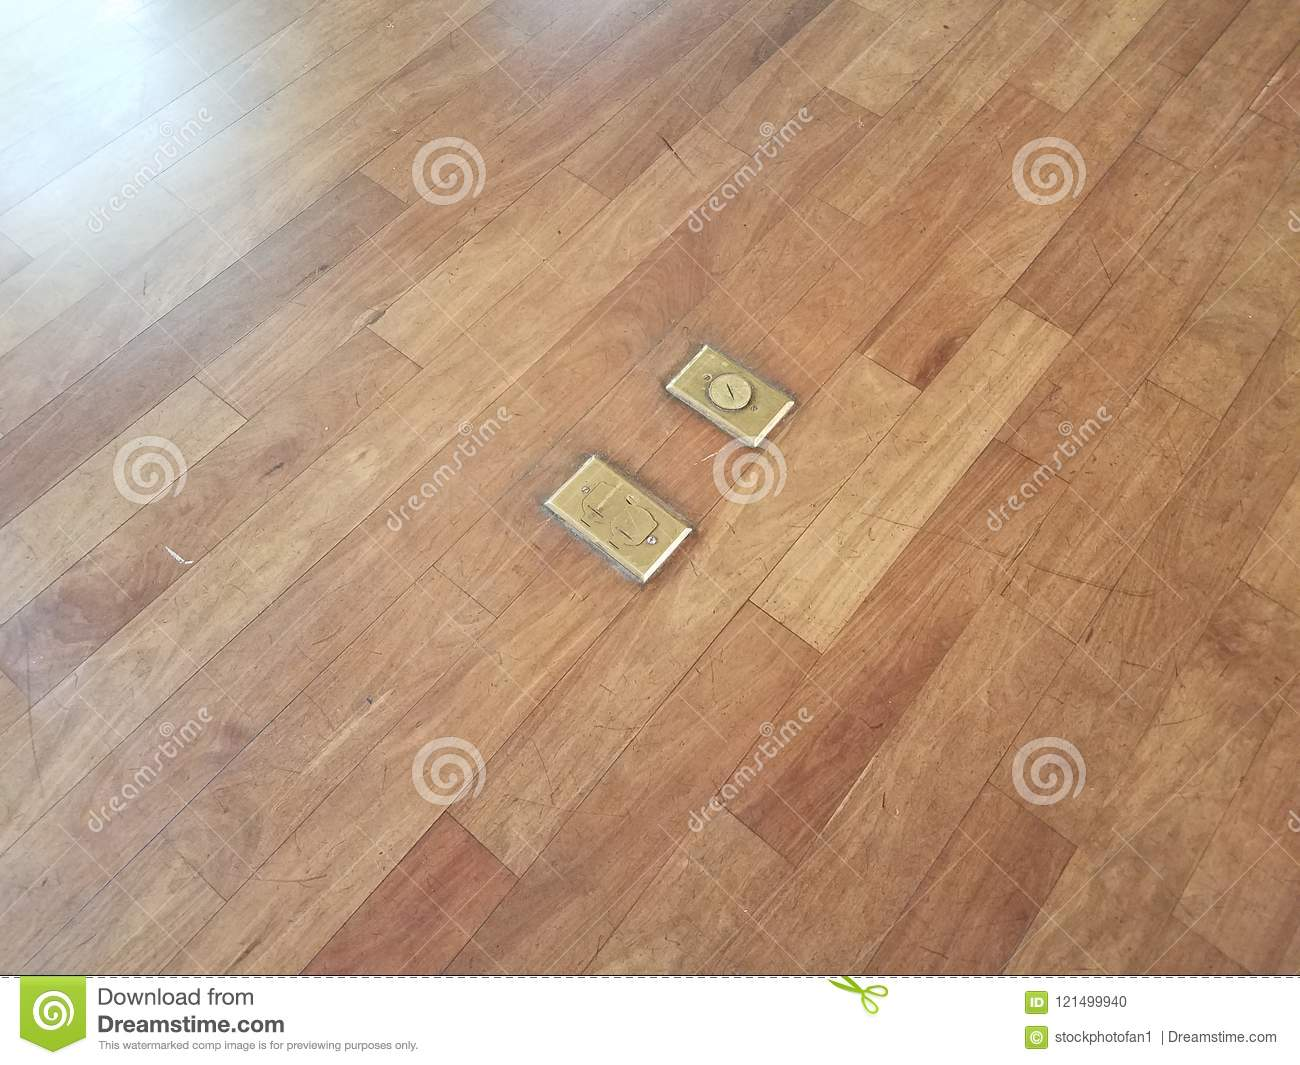 Brown Wood Floor With Electrical Outlets Stock Photo - Image of